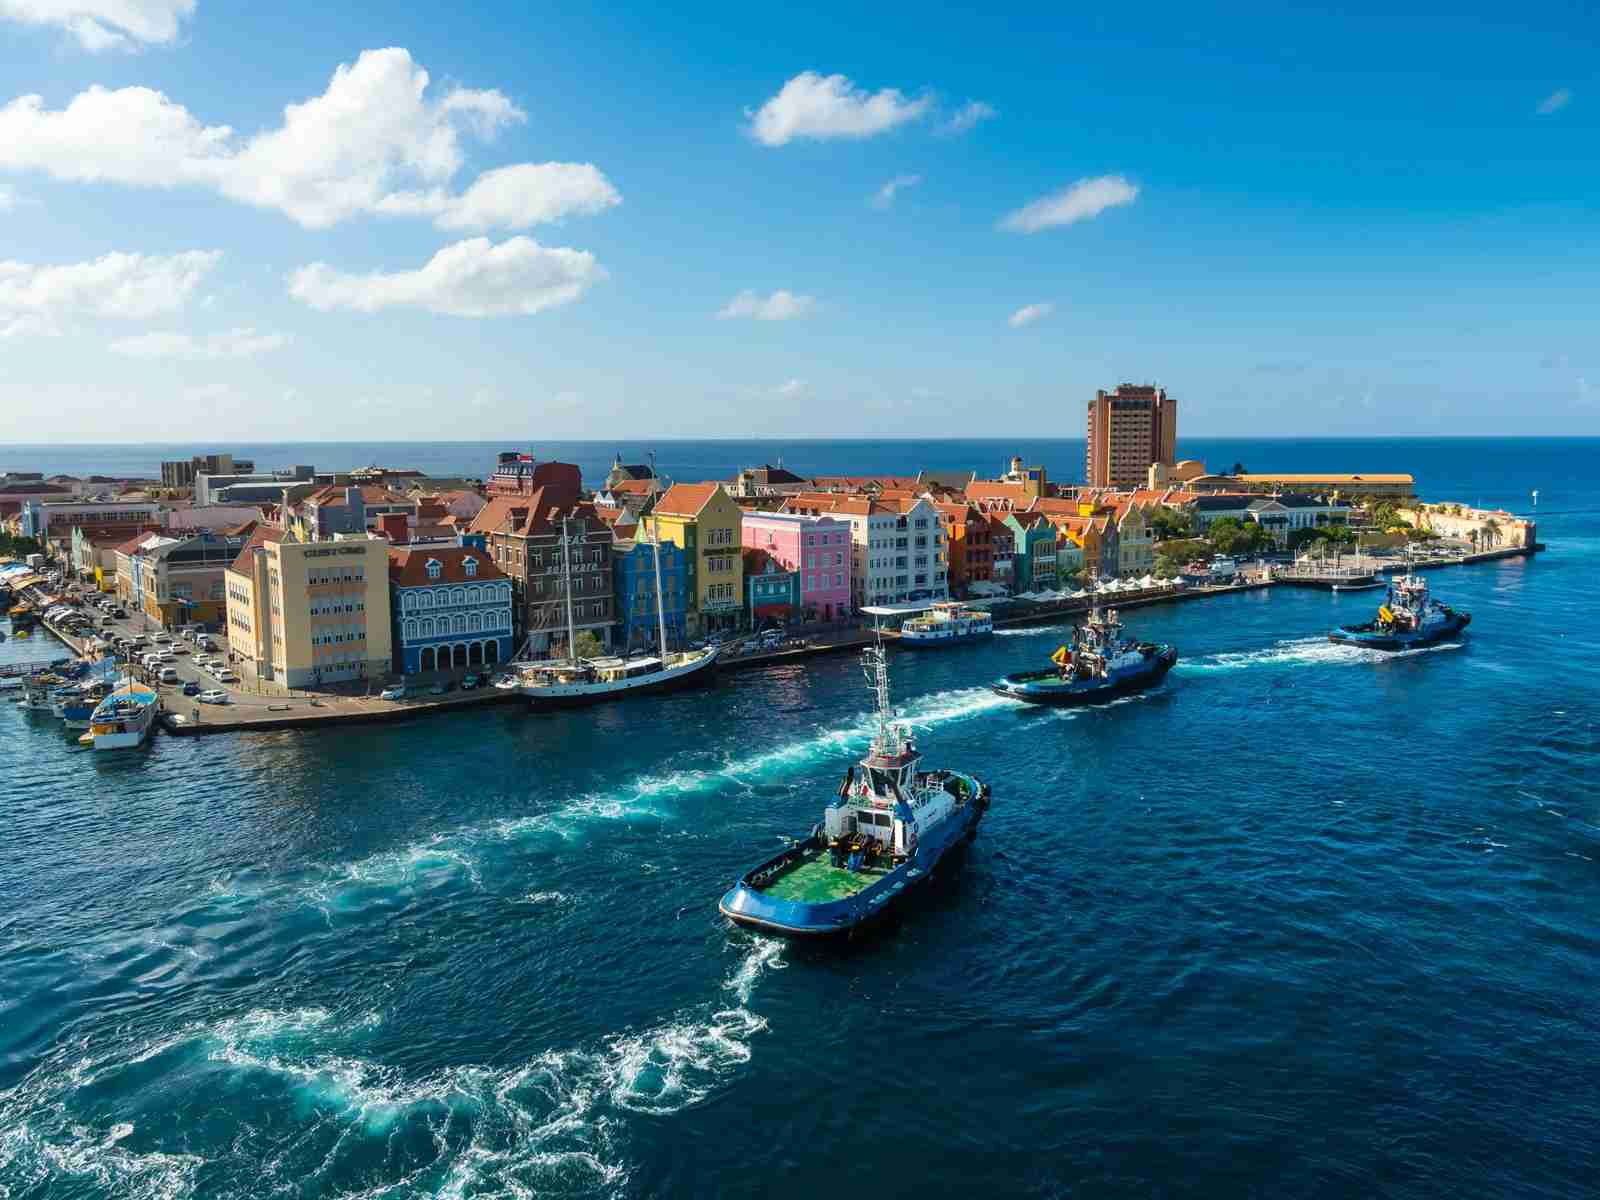 Curaçao. (Photo by Westend61/Getty Images)